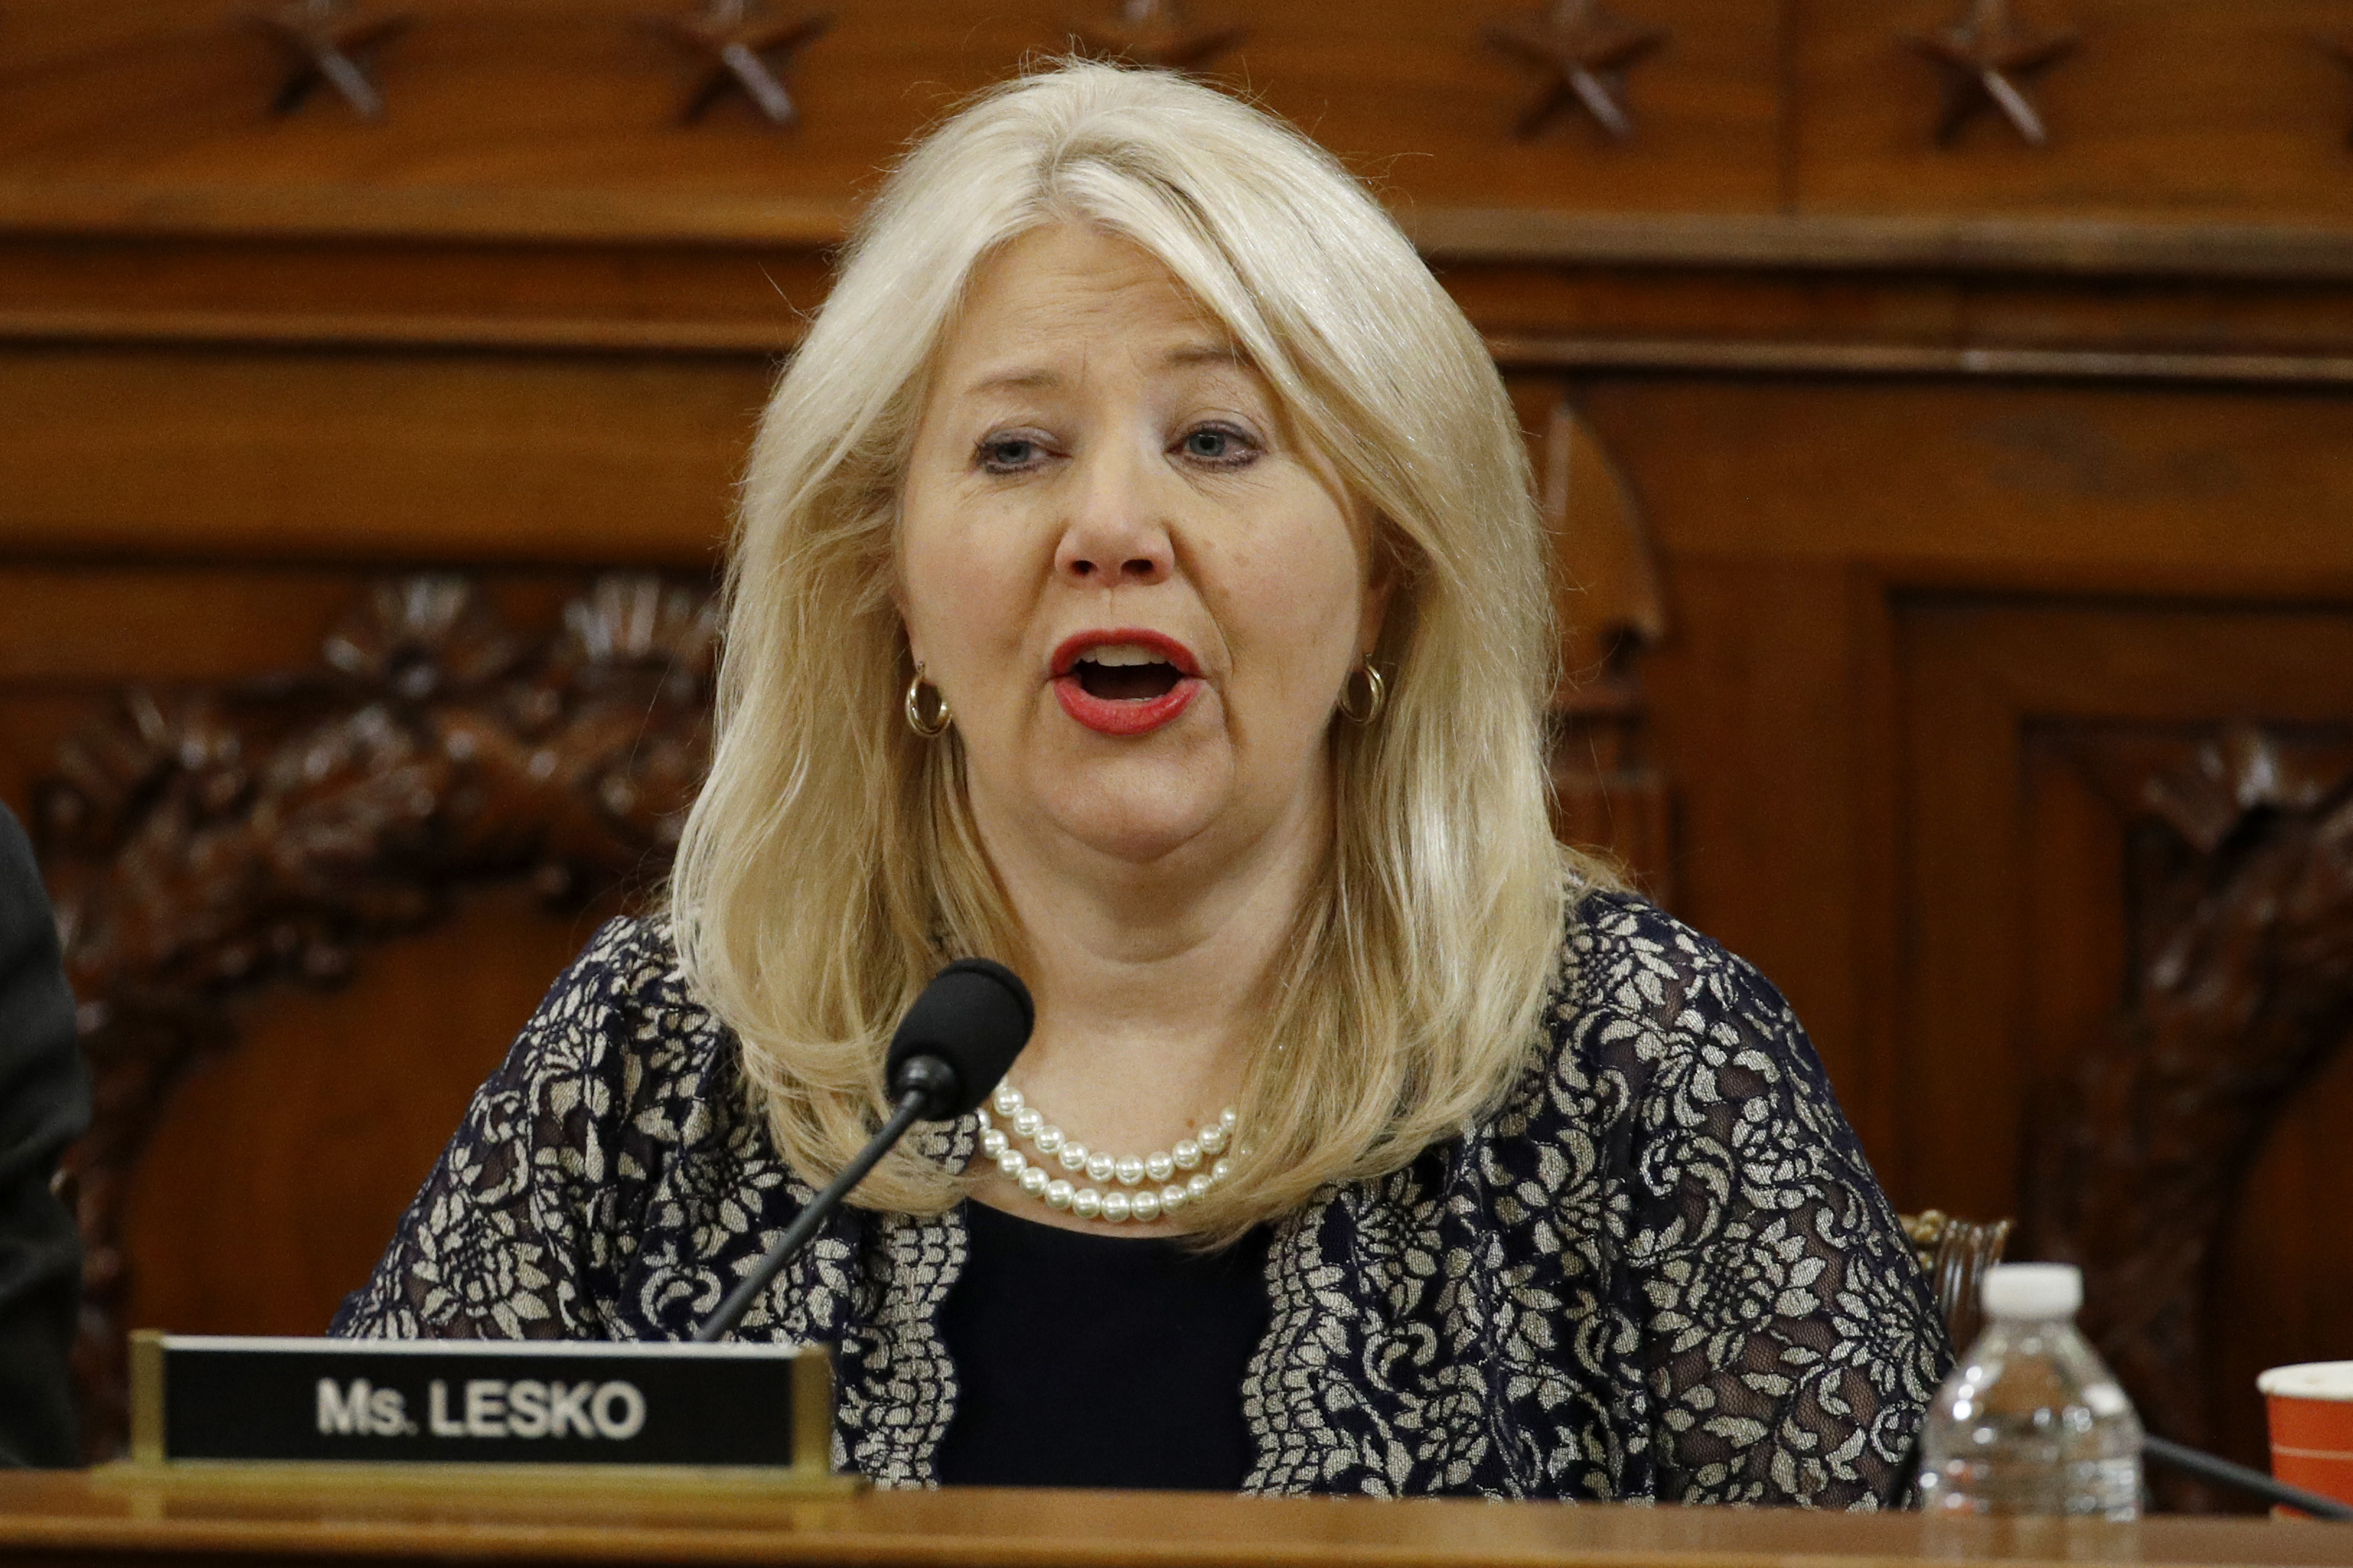 Rep. Debbie Lesko fires back at Bette Midler: 'Wind beneath your wings has turned into hot air'